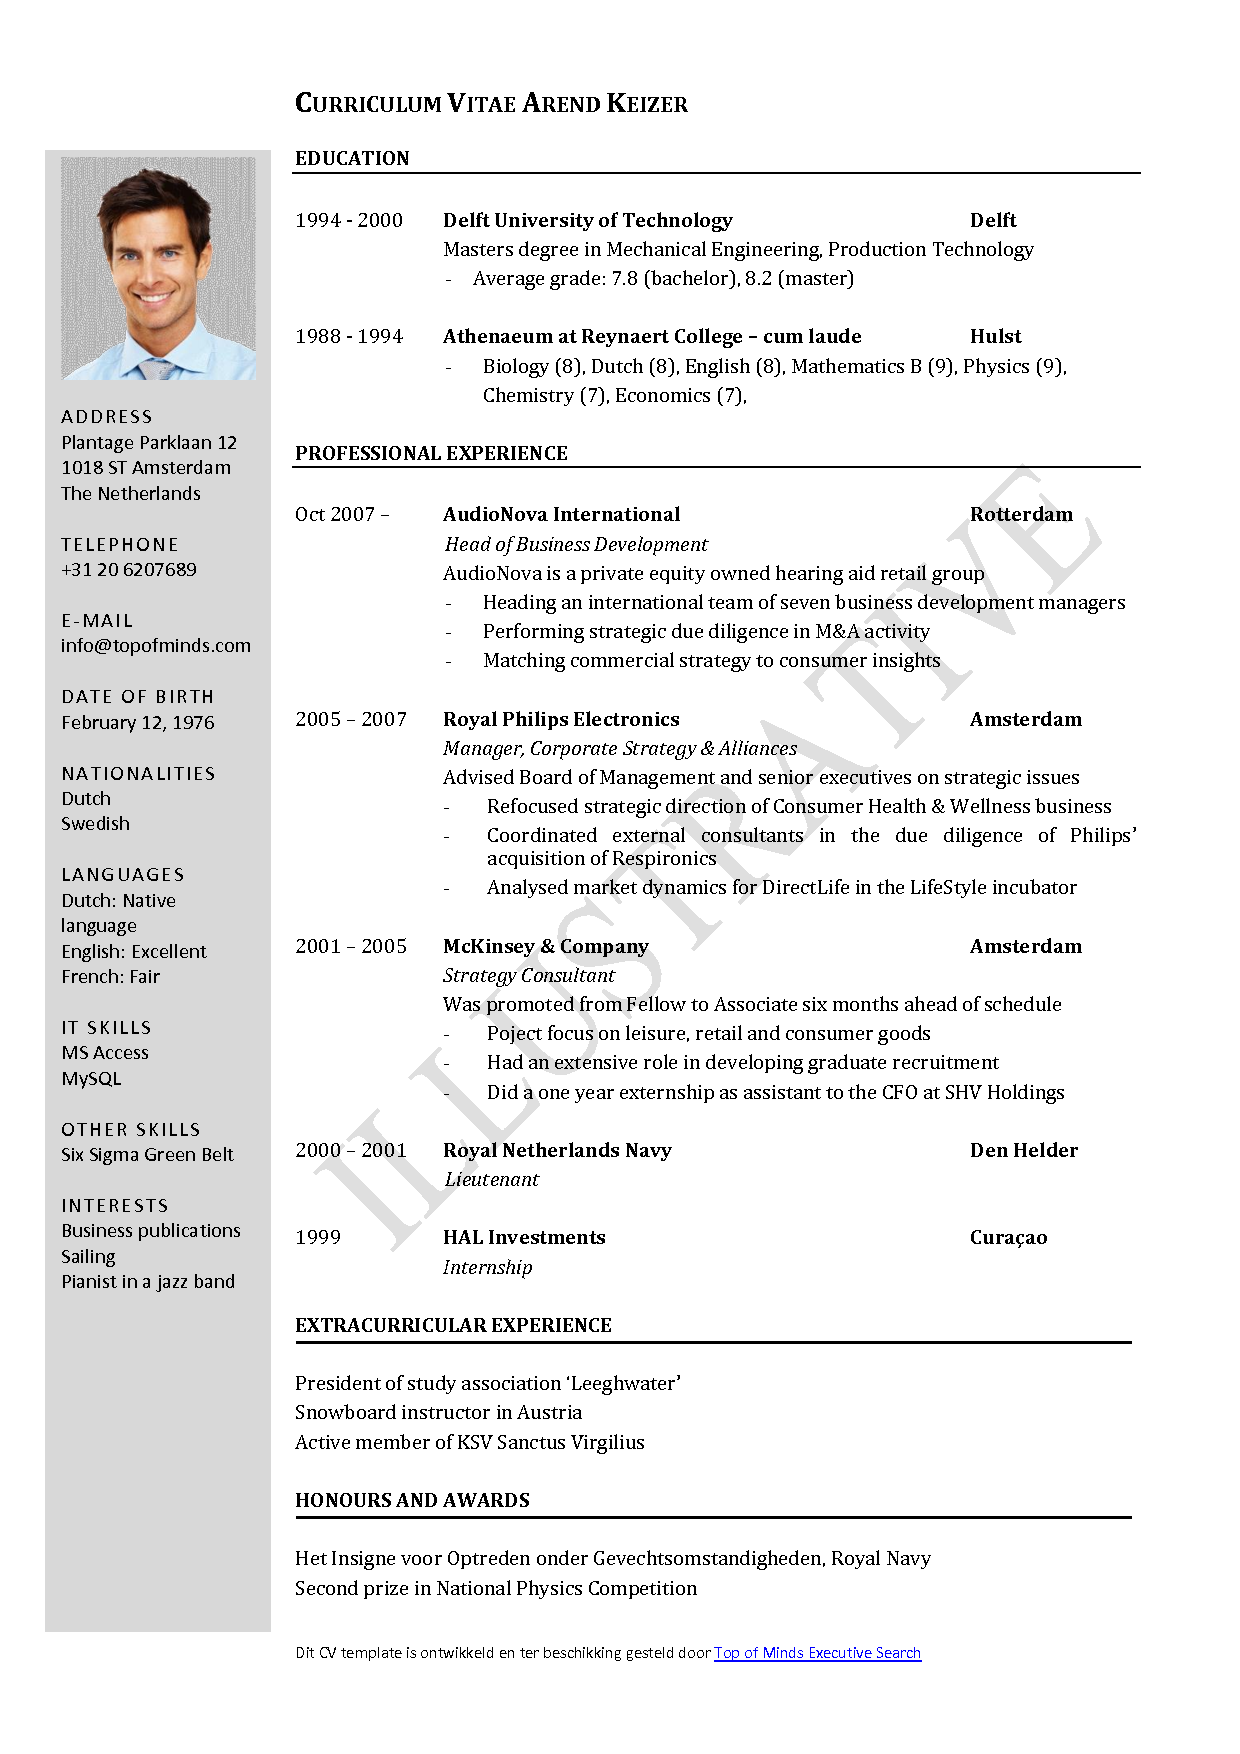 free curriculum vitae template word download cv template With curriculum vitae format free download